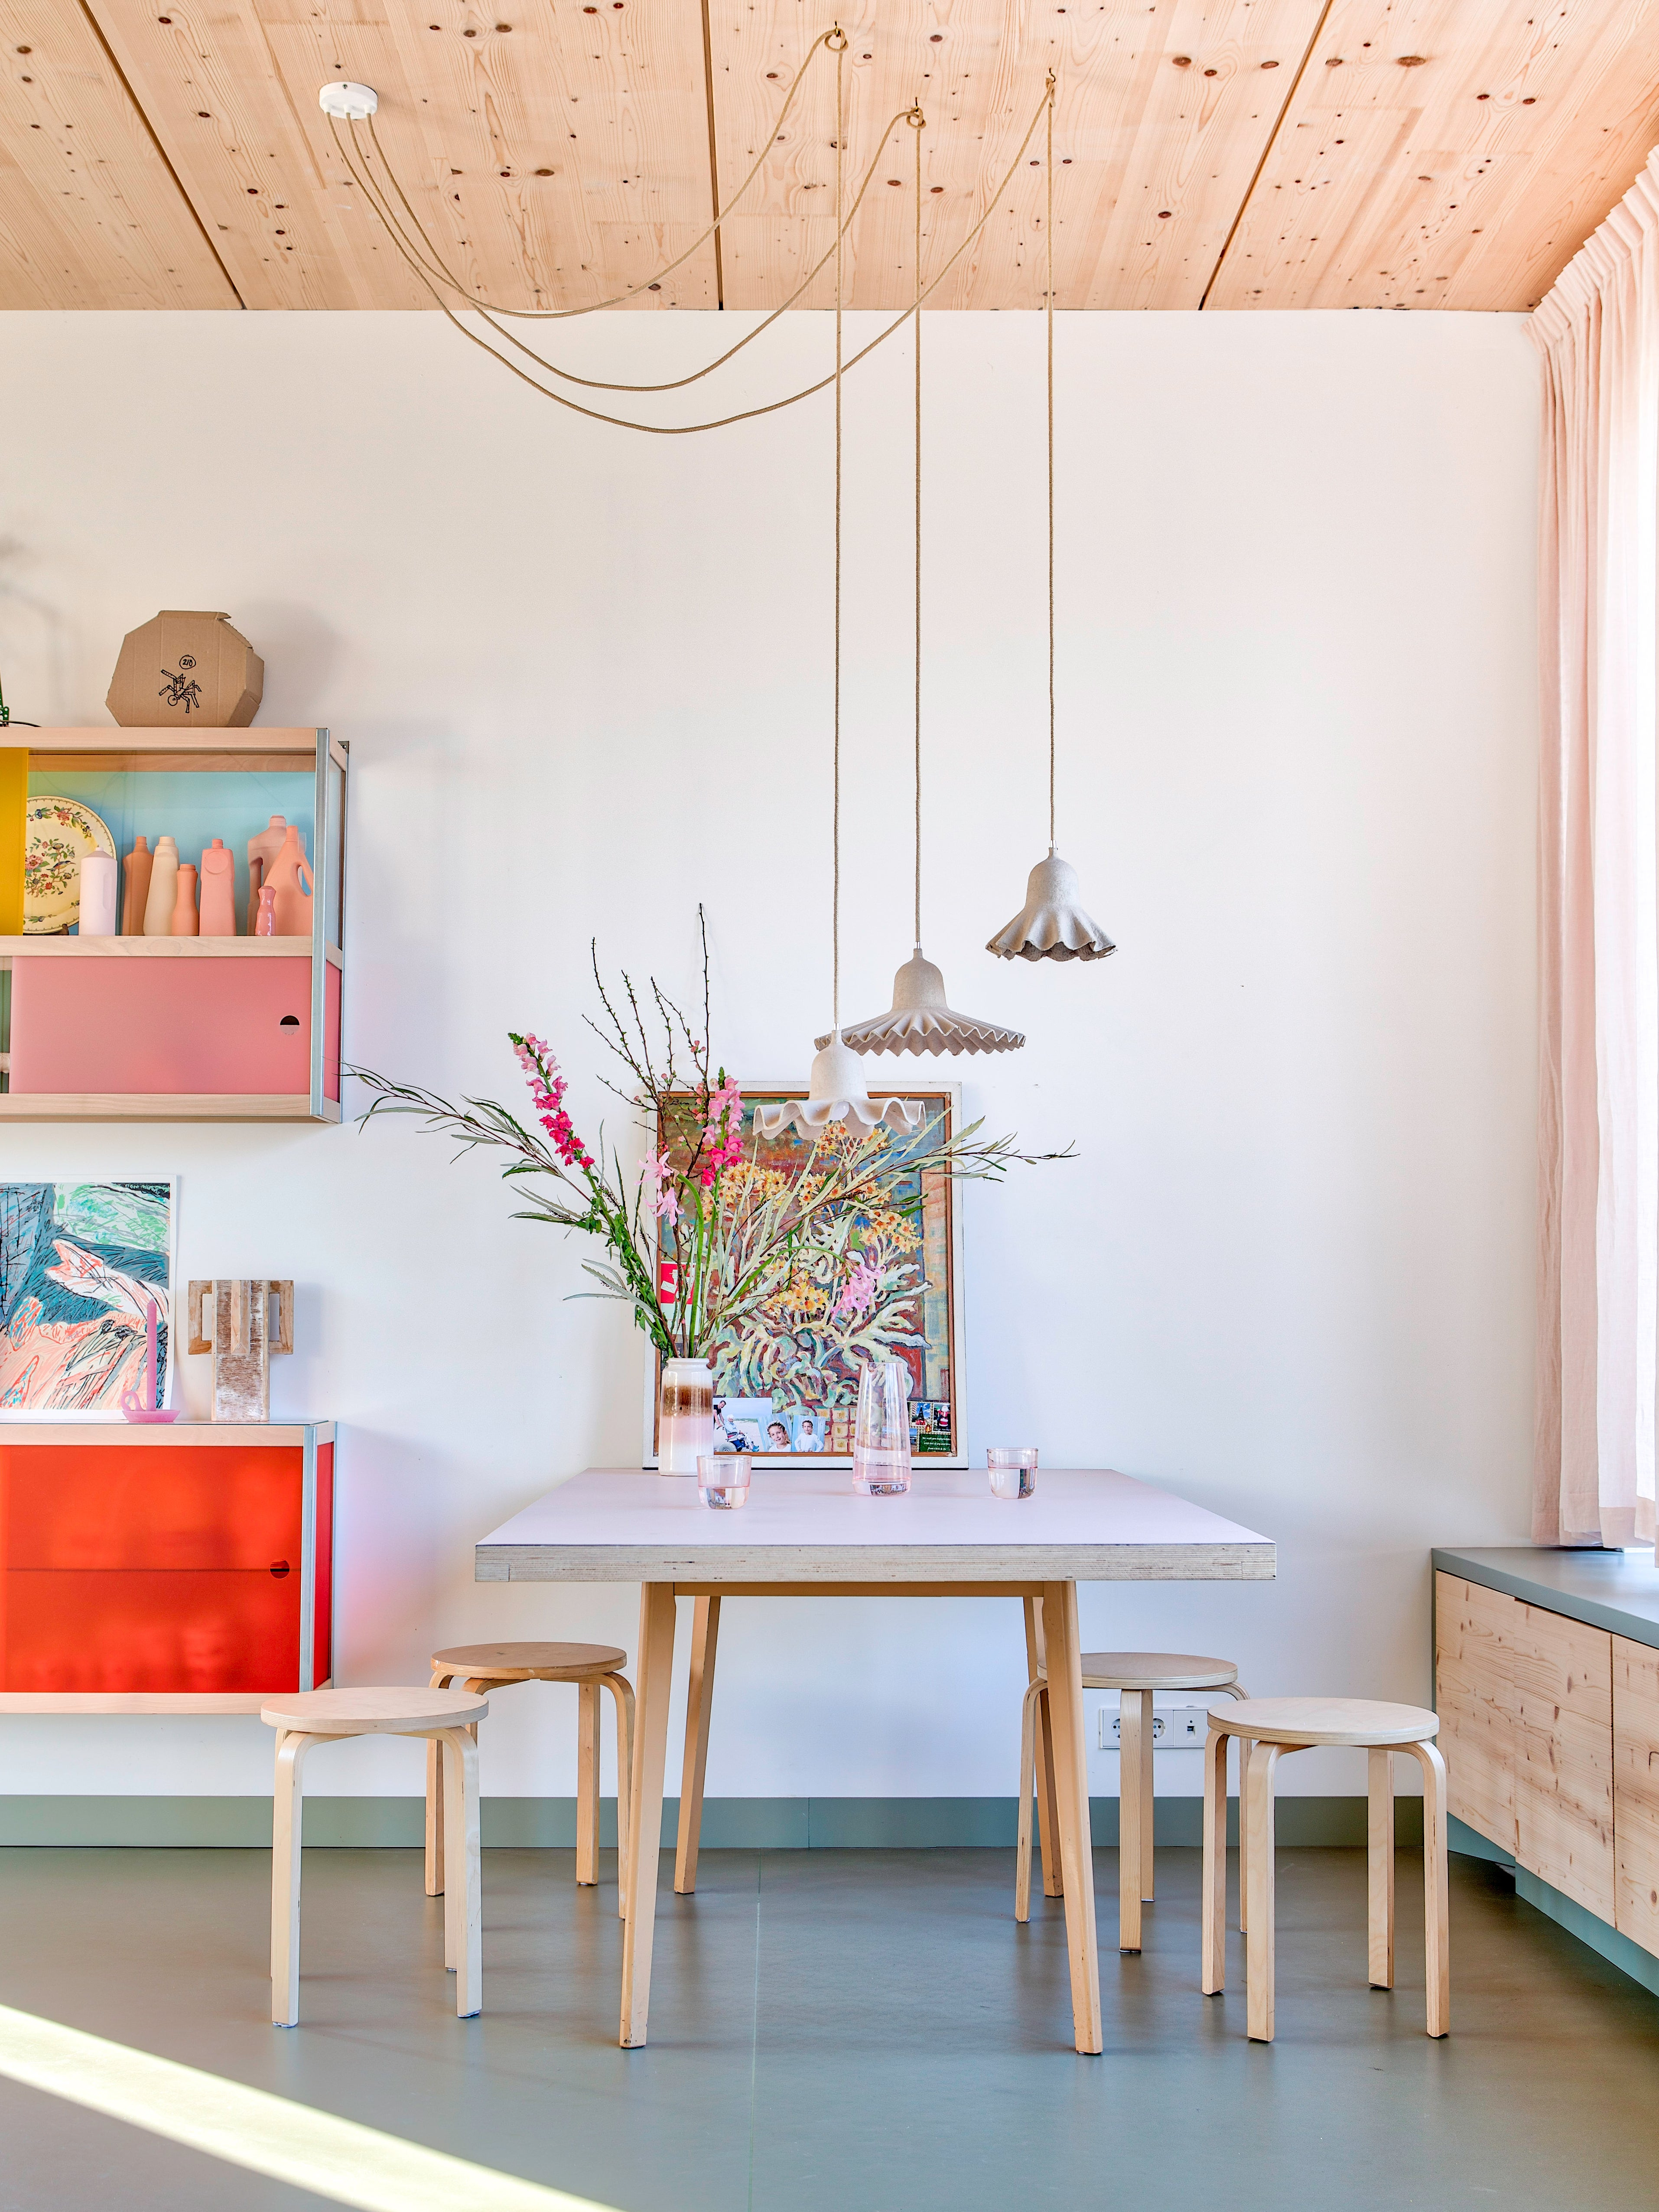 00-FEATURE-eclectic-eco-friendly-home-tour-domino